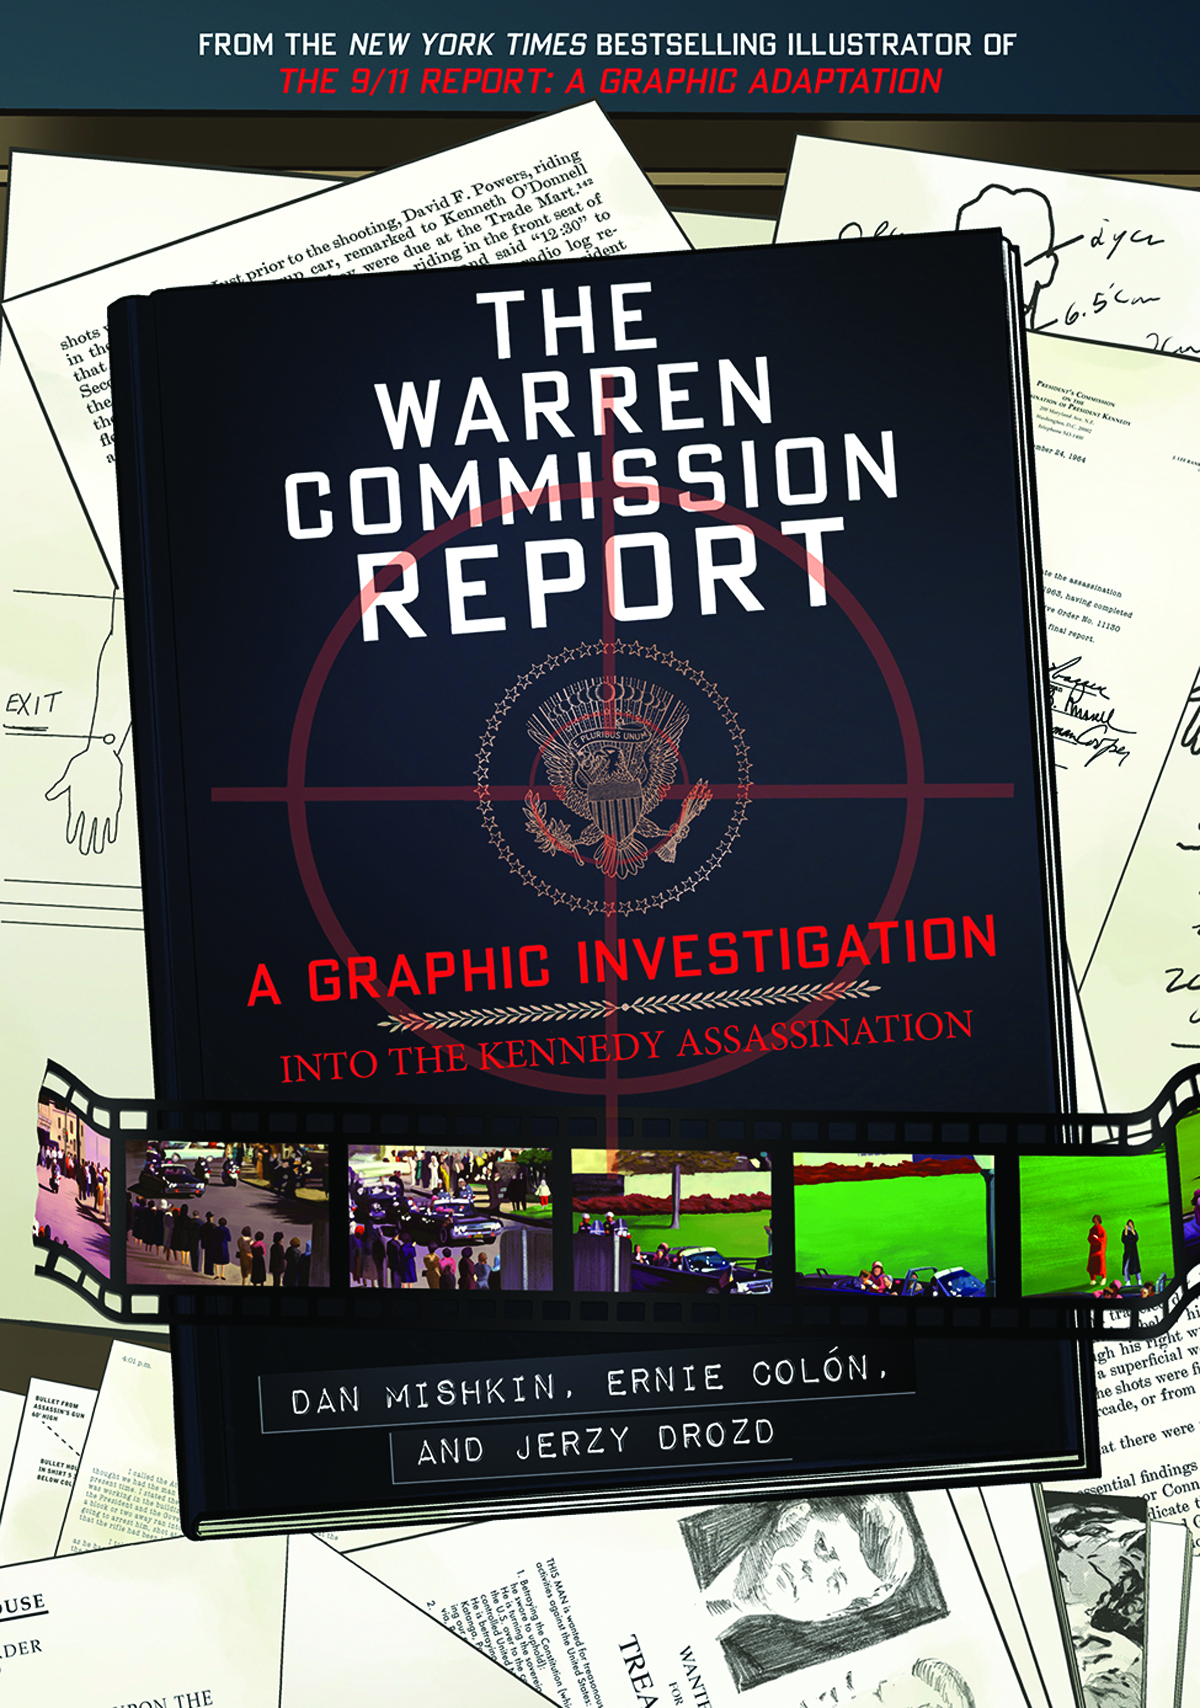 """Flatting     Within days of the murder of President John F. Kennedy,  Lyndon B. Johnson appointed a seven-member commission to investigate the assassination. In its report, the Warren Commission determined that there was """"no credible evidence"""" conflicting with its conclusion of a lone gunman. Artist Ernie Colón, bestselling illustrator of  The 9/11 Report: A Graphic Adaptation , teams up with author Dan Mishkin to provide a unique means of testing the commission's findings, unraveling conflicting narratives side by side through graphic-novel techniques.  The Warren Commission Report: A Graphic Investigation into the Kennedy Assassination breaks down how decisions in the days that followed the assassination not only shaped how the commission reconstructed events but also helped foster the conspiracy theories that play a part in American politics to this day."""